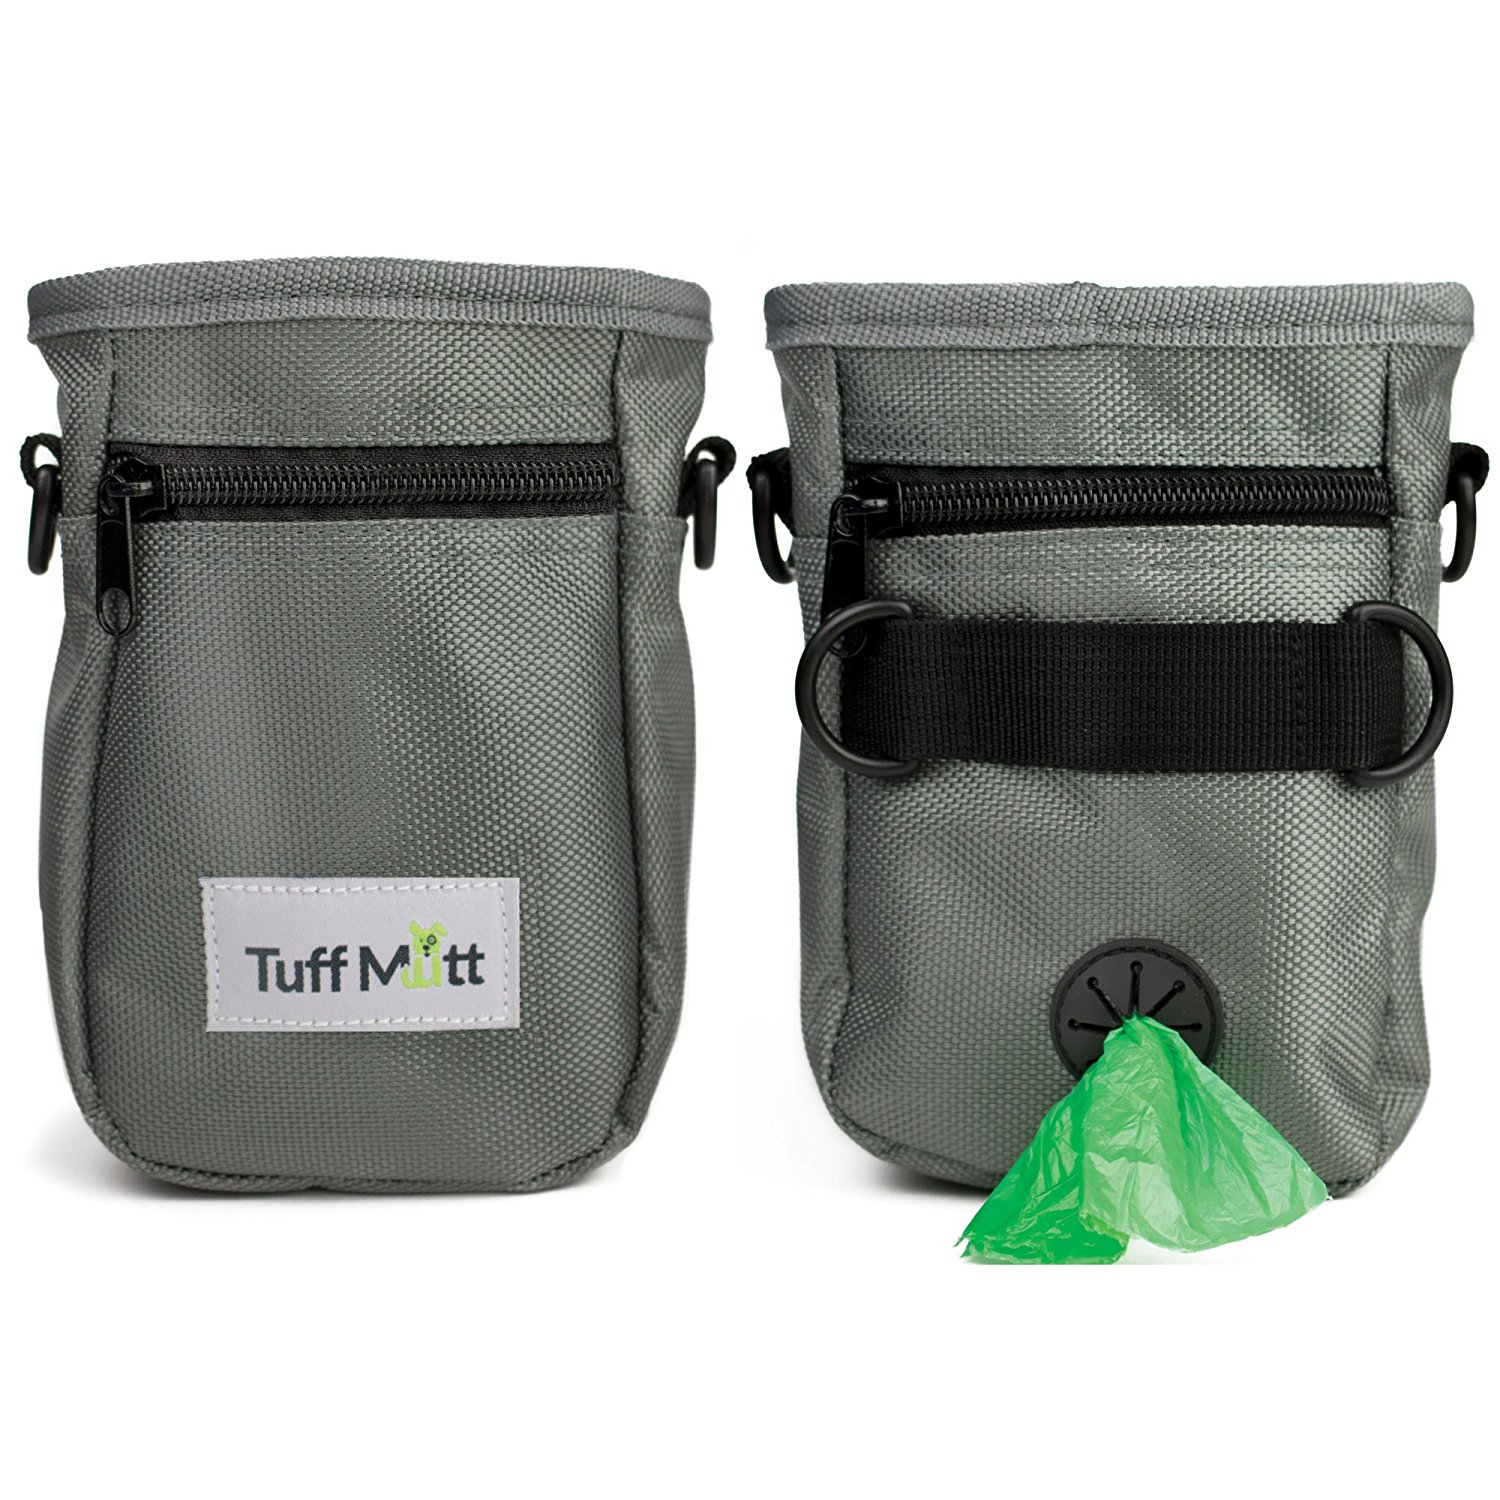 Tuff Mutt Dog Treat Pouch